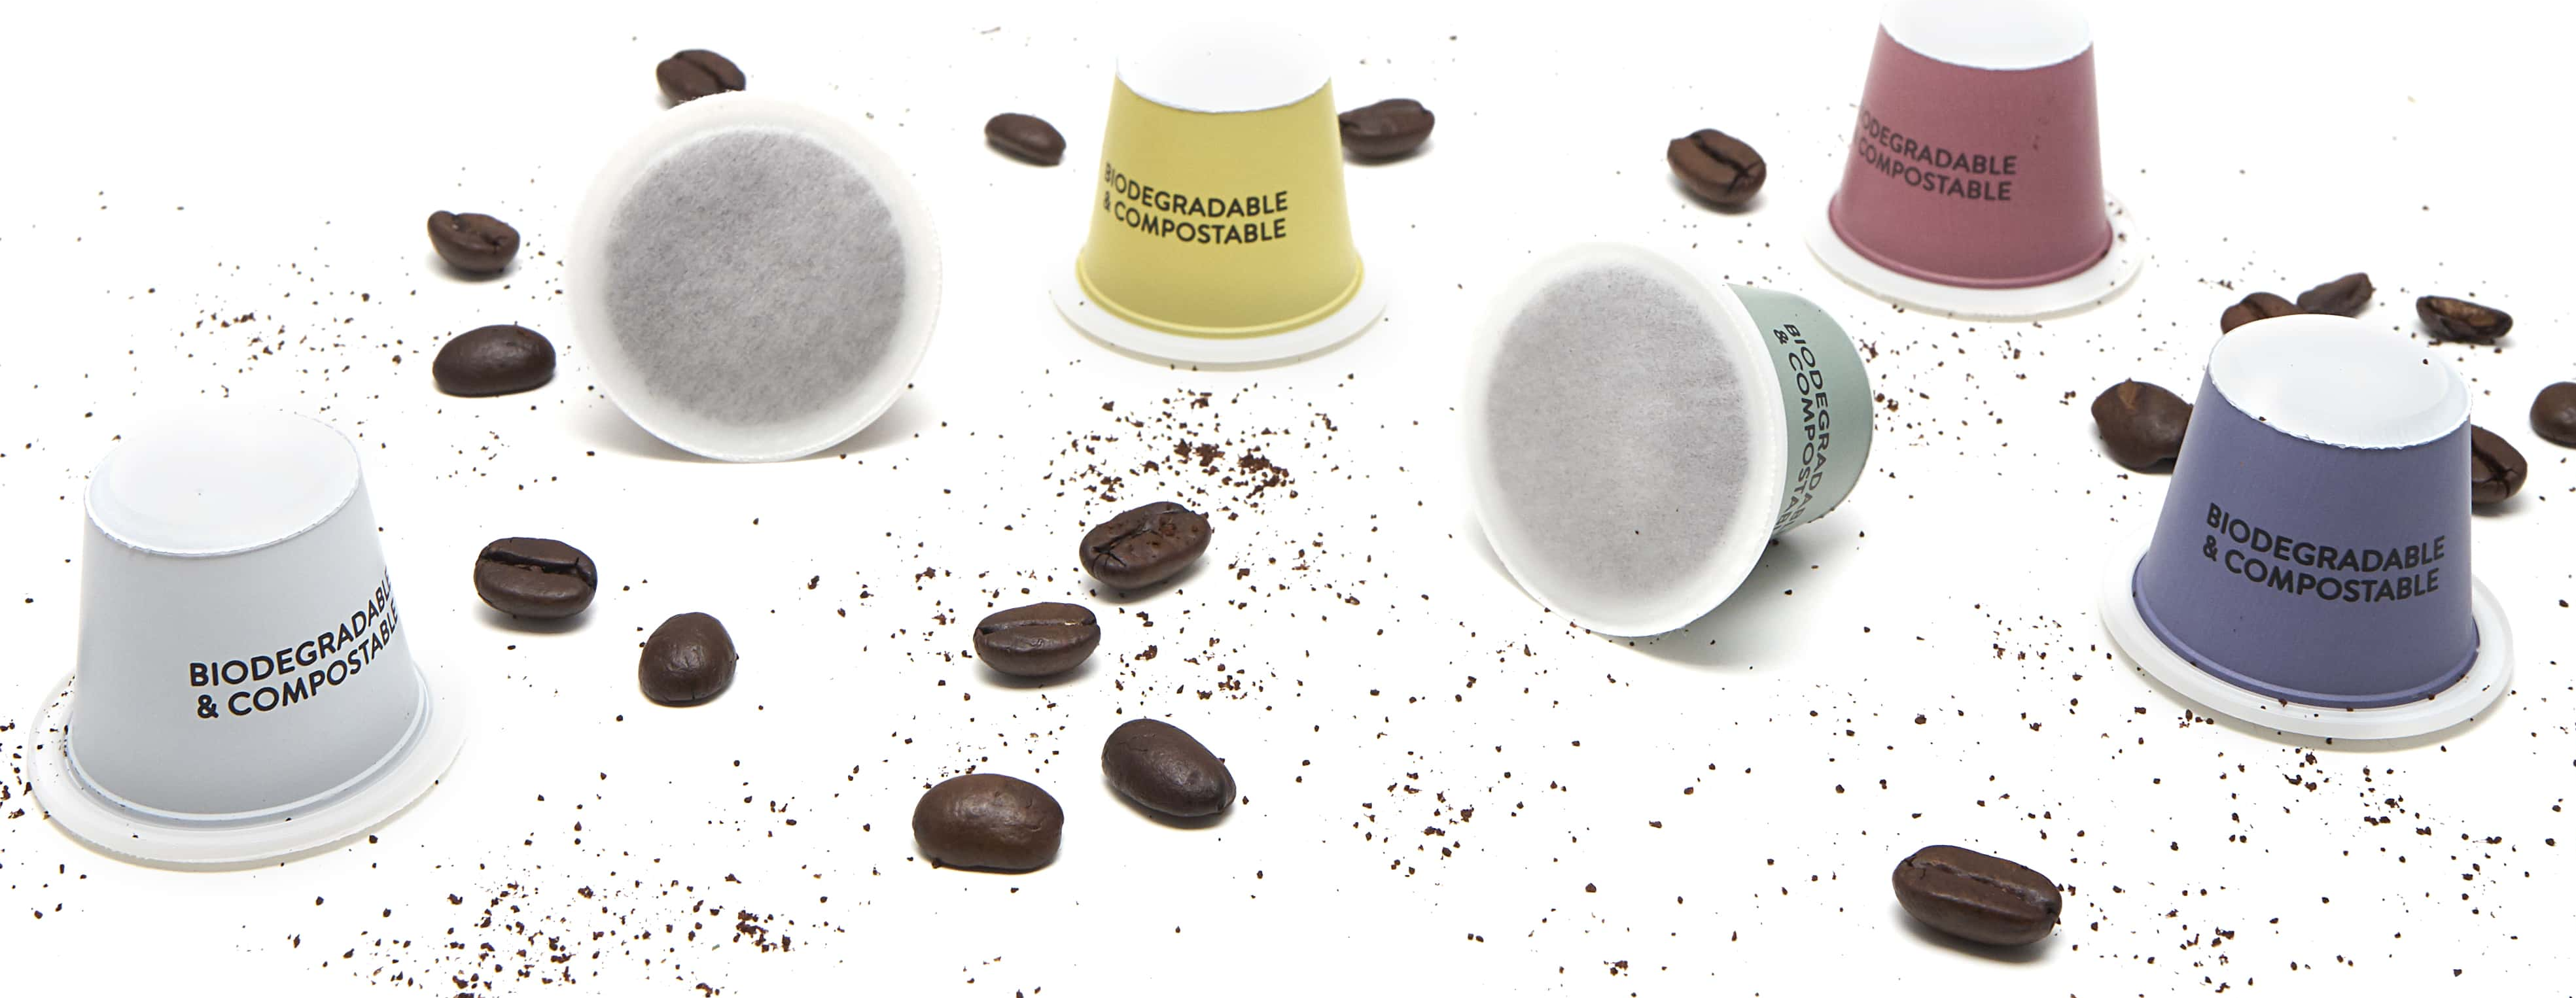 Moving Beans Sustainable & Biodegradable Coffee Pods